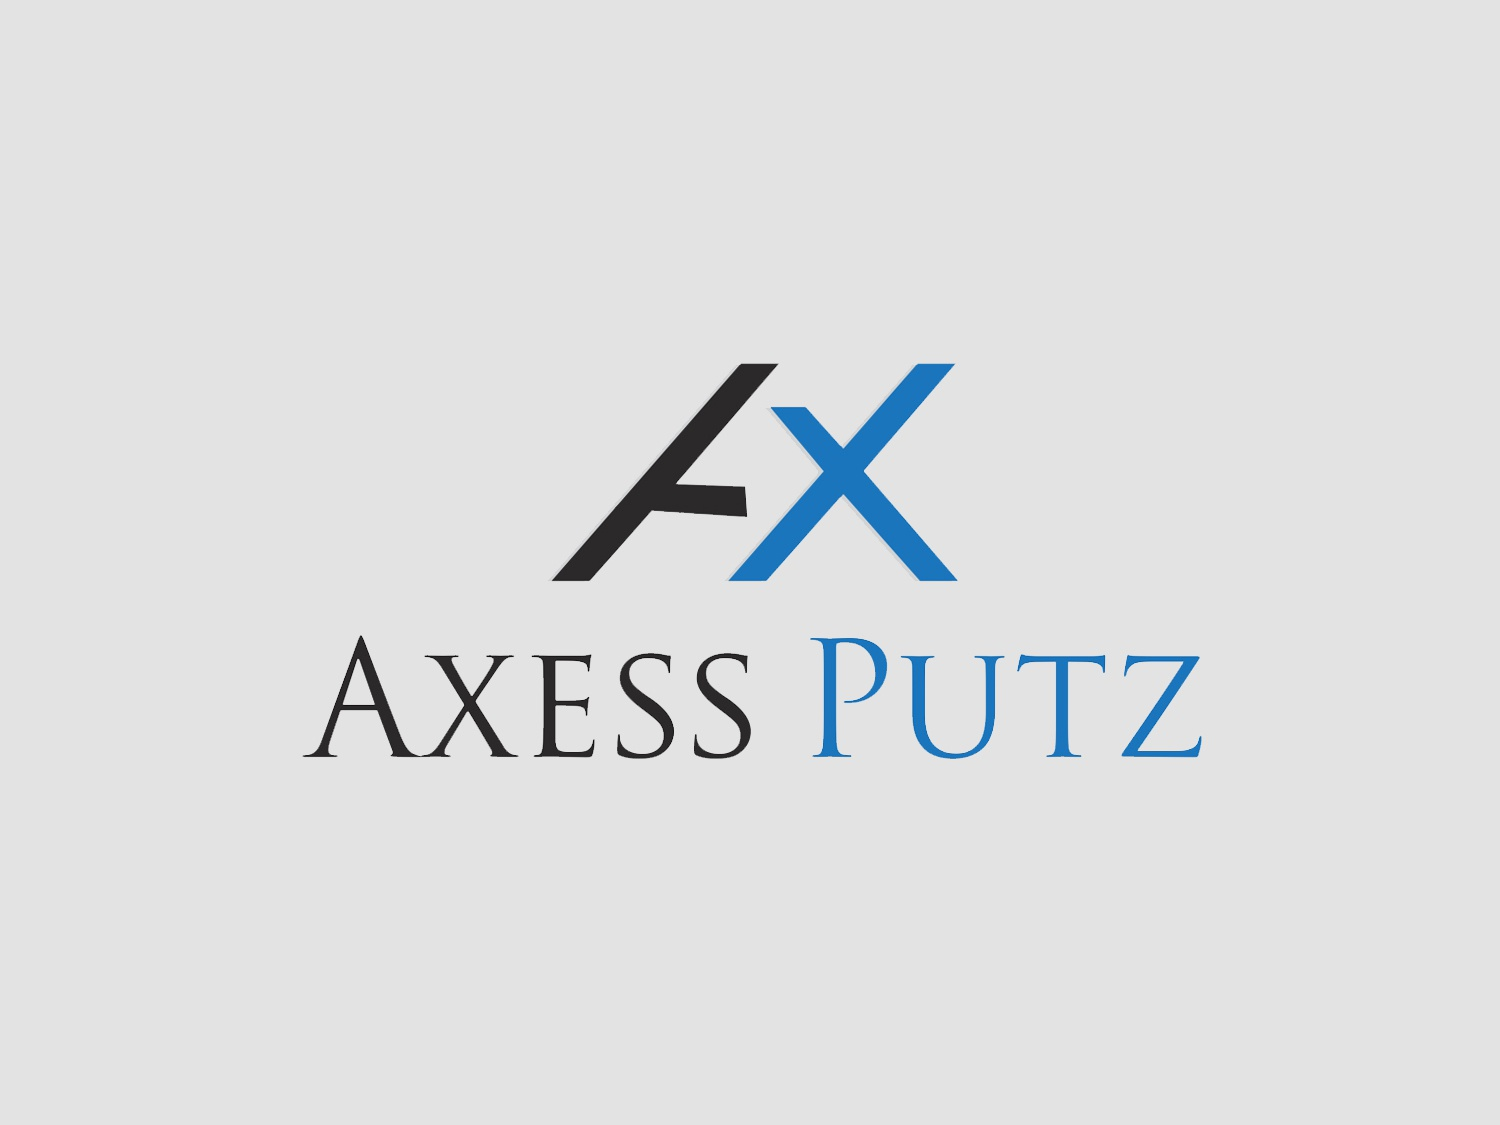 Axess Putz Logo Design typography branding animation vector logo design illustration brand and identity